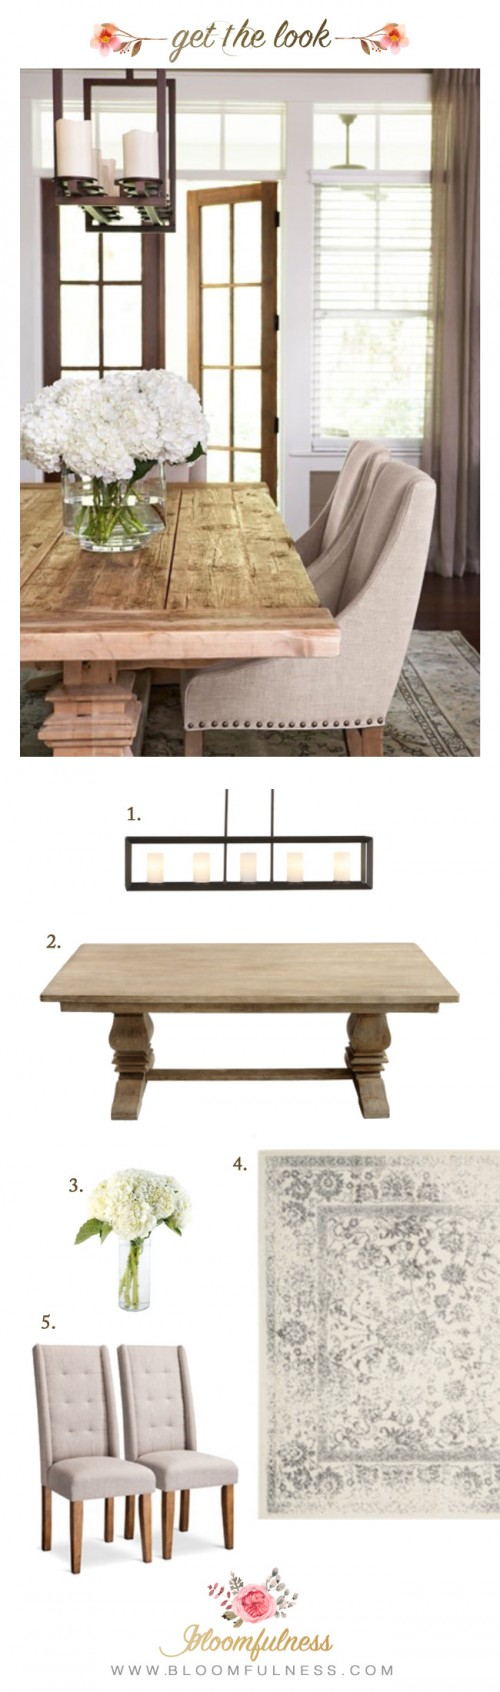 Rustic Neutral Dining Room: Get the look for less!